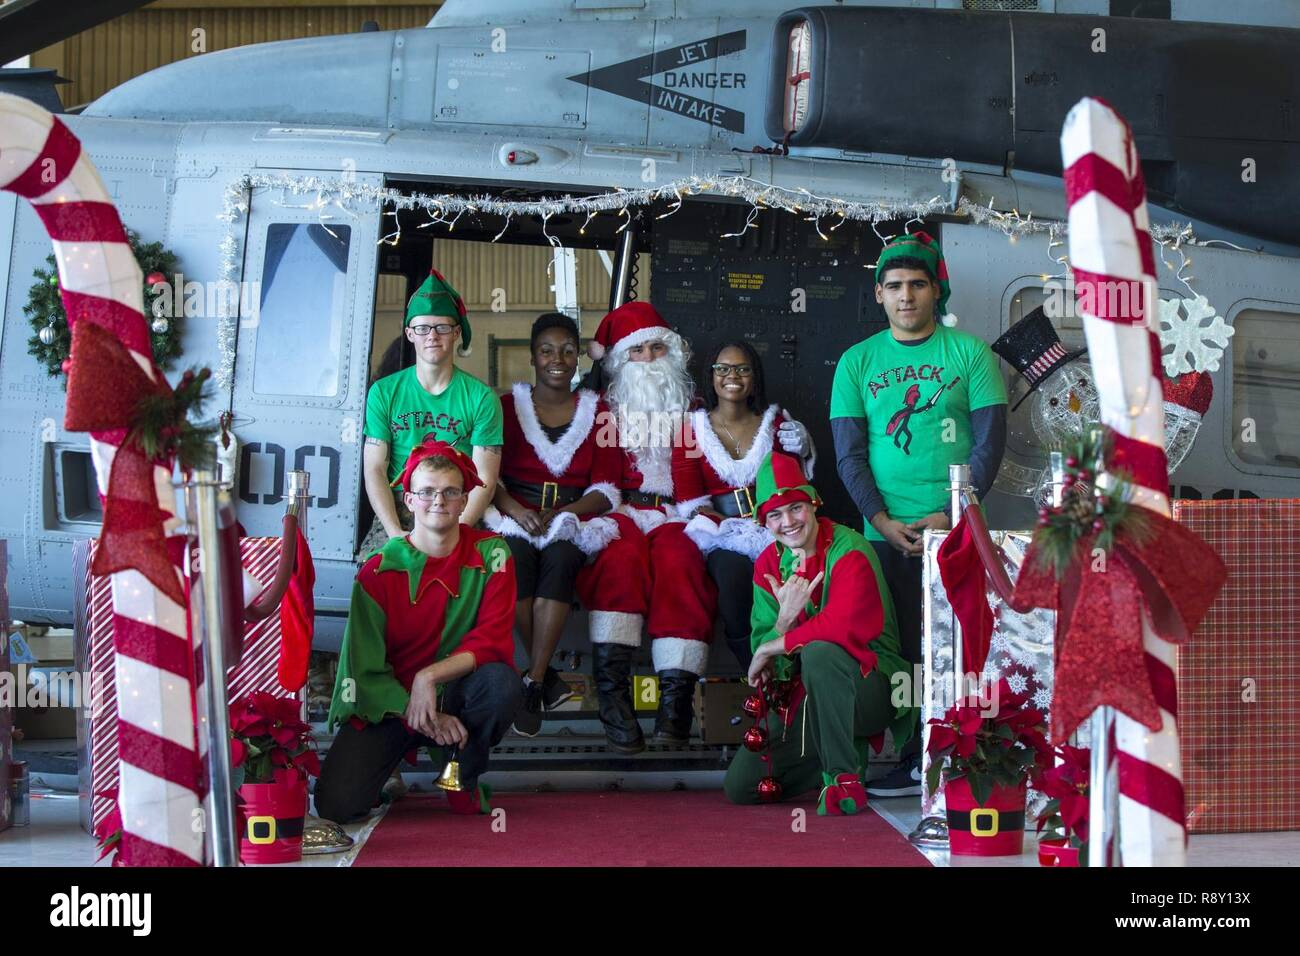 Santa Claus and his helpers take a group photo during the